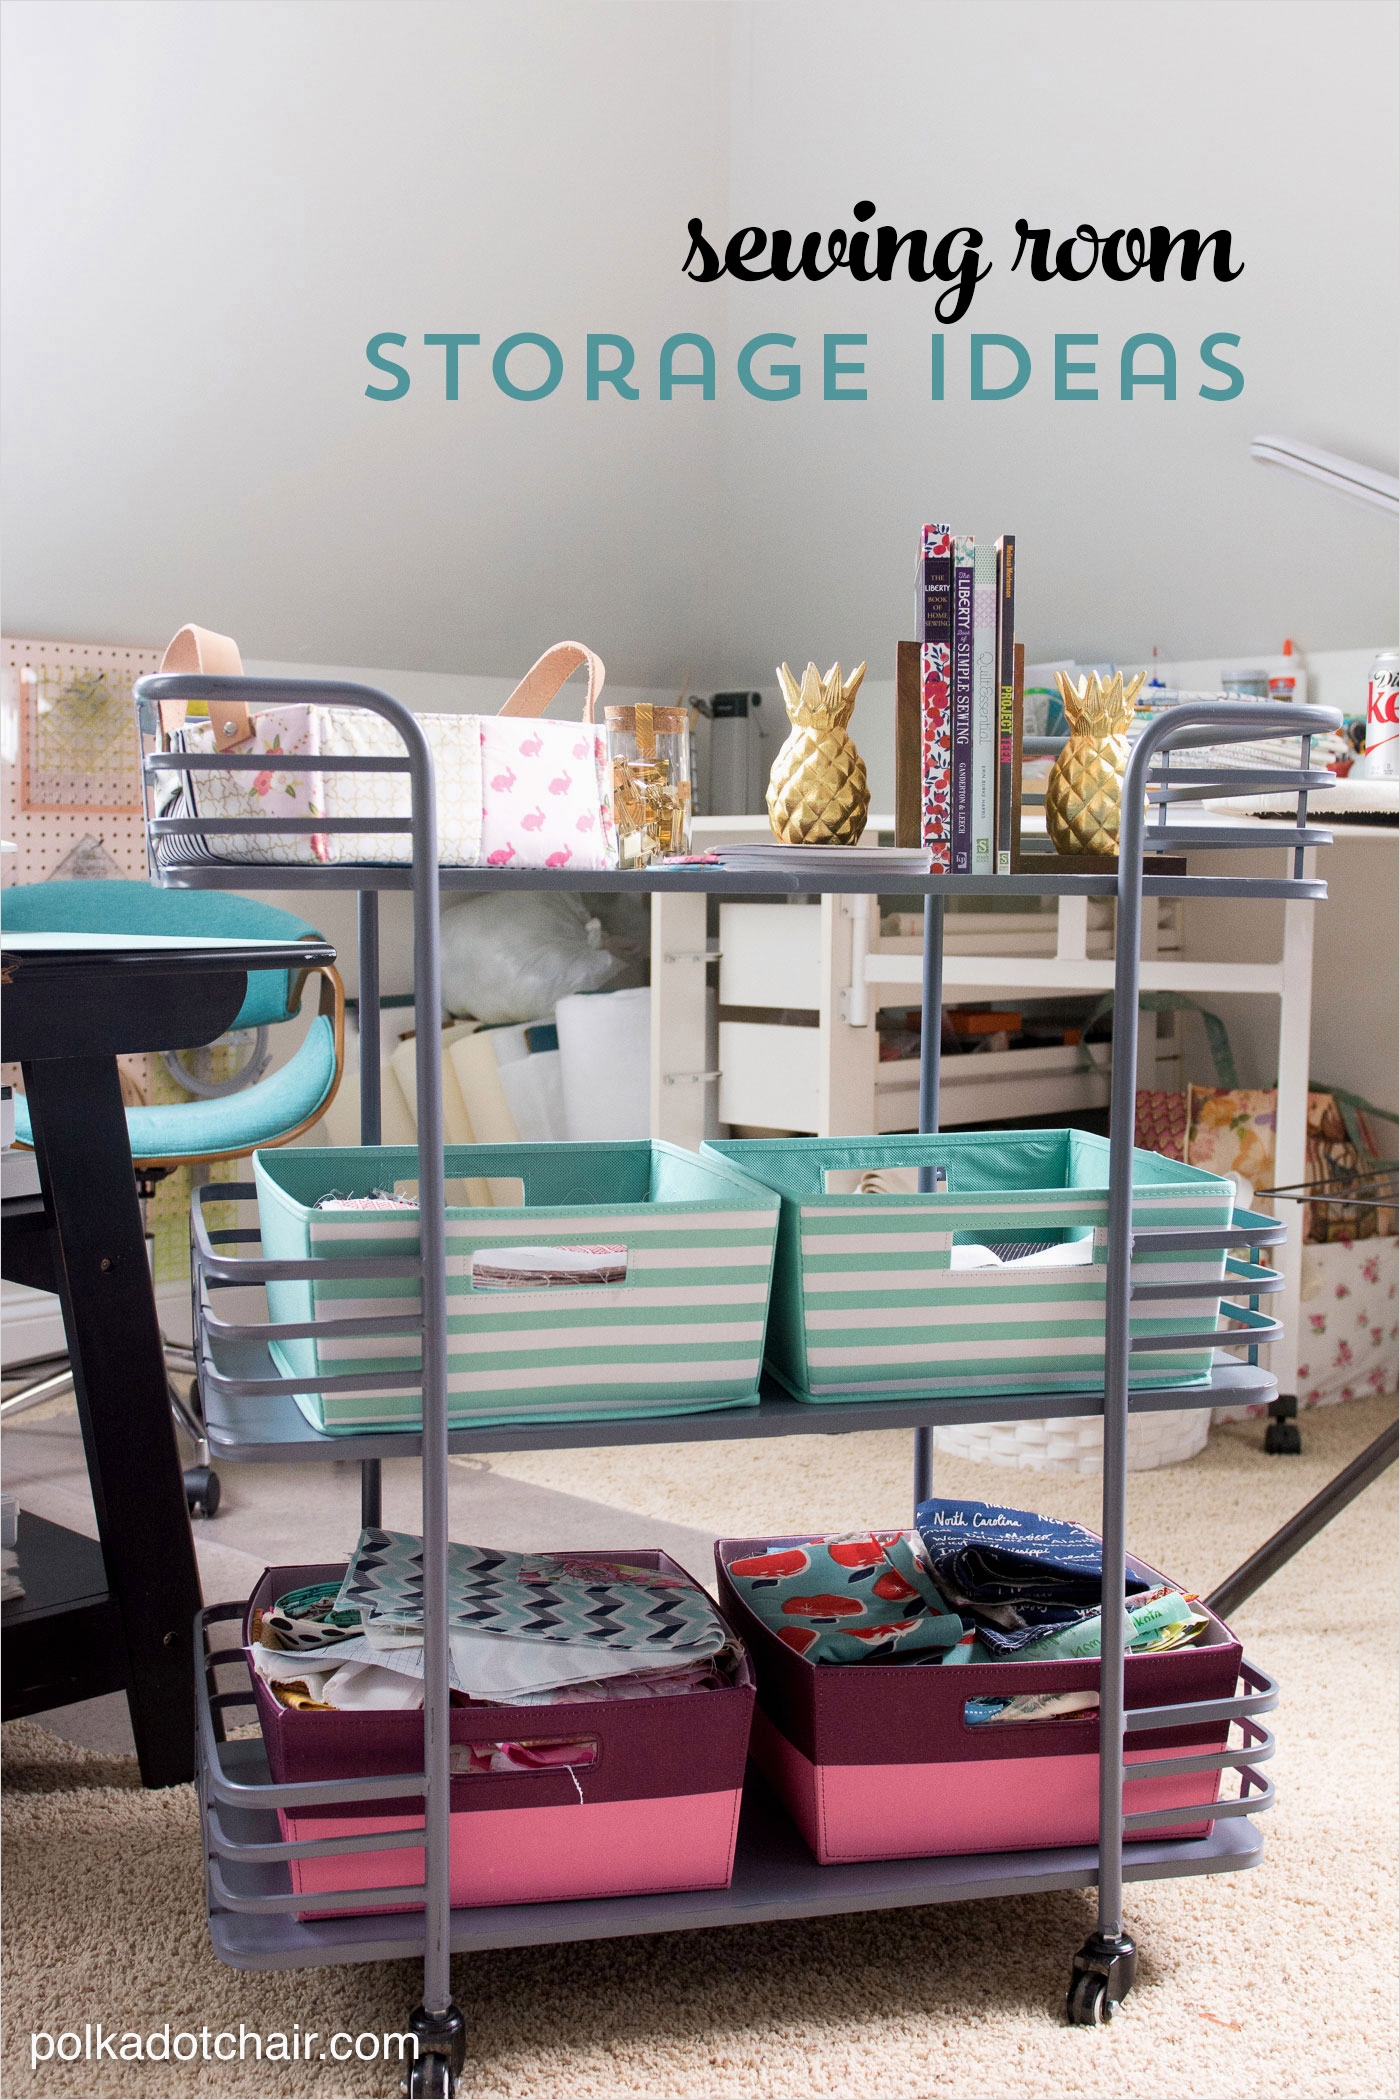 40 Creative Sewing Room Storage Ideas 71 organize Sewing Room Ideas Easy Craft Ideas 1